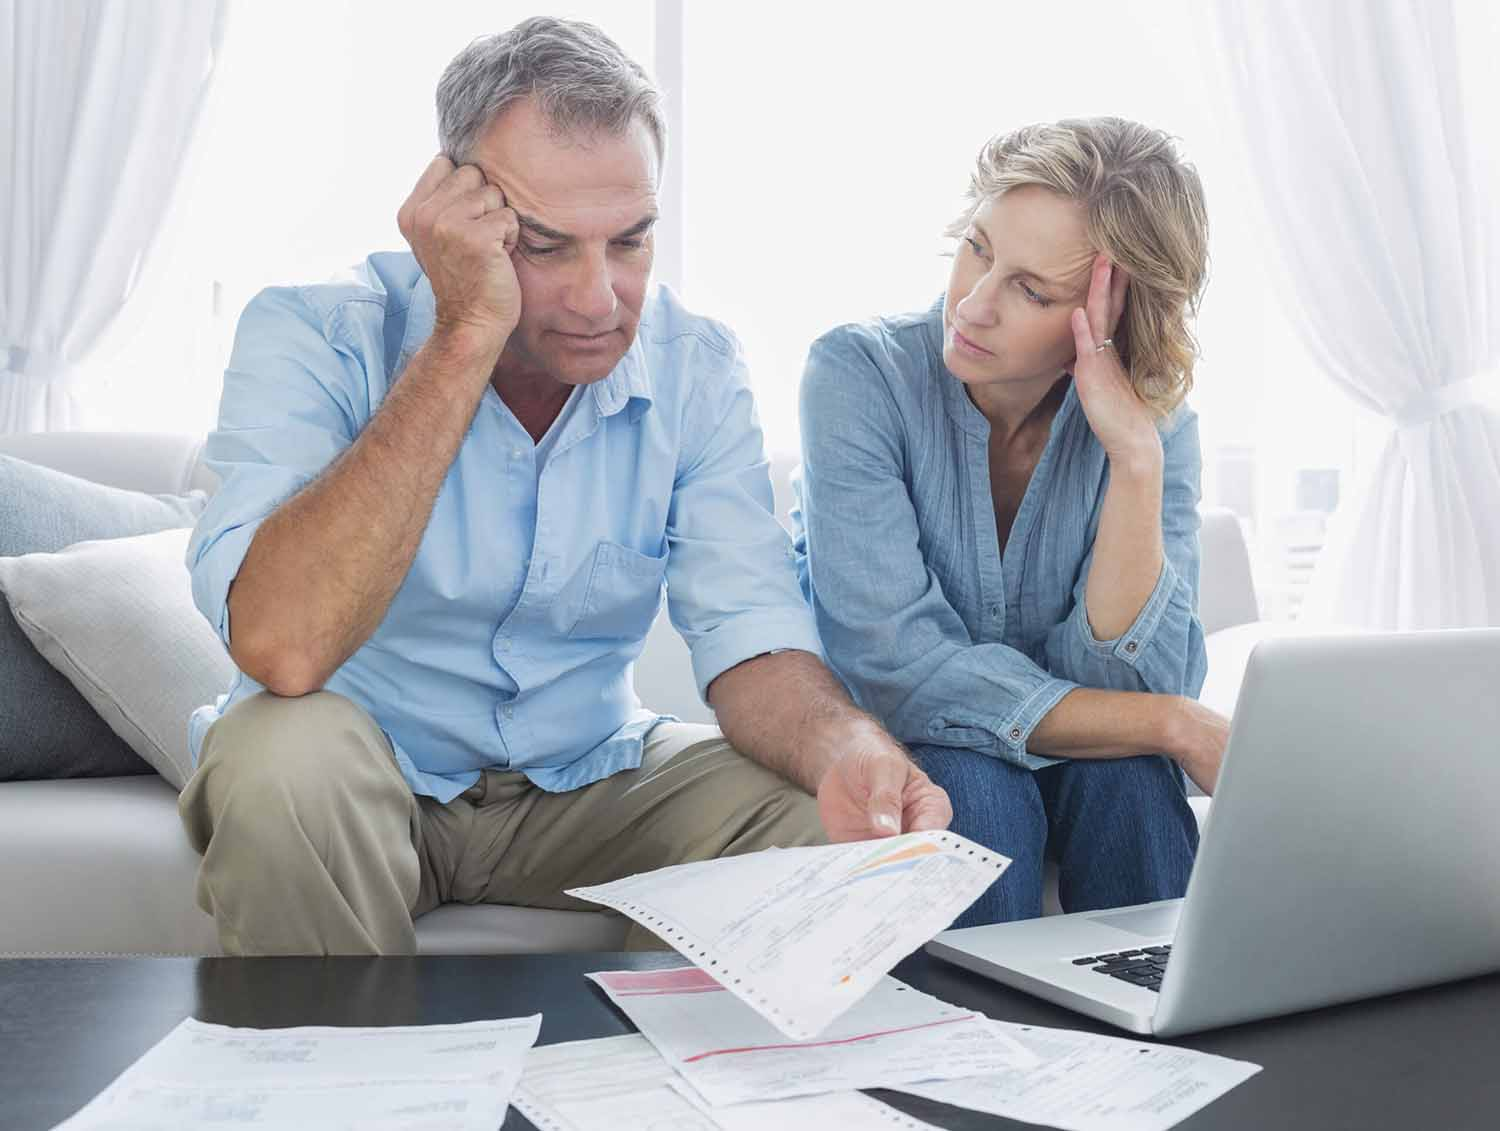 Couple considers if they should file for bankruptcy